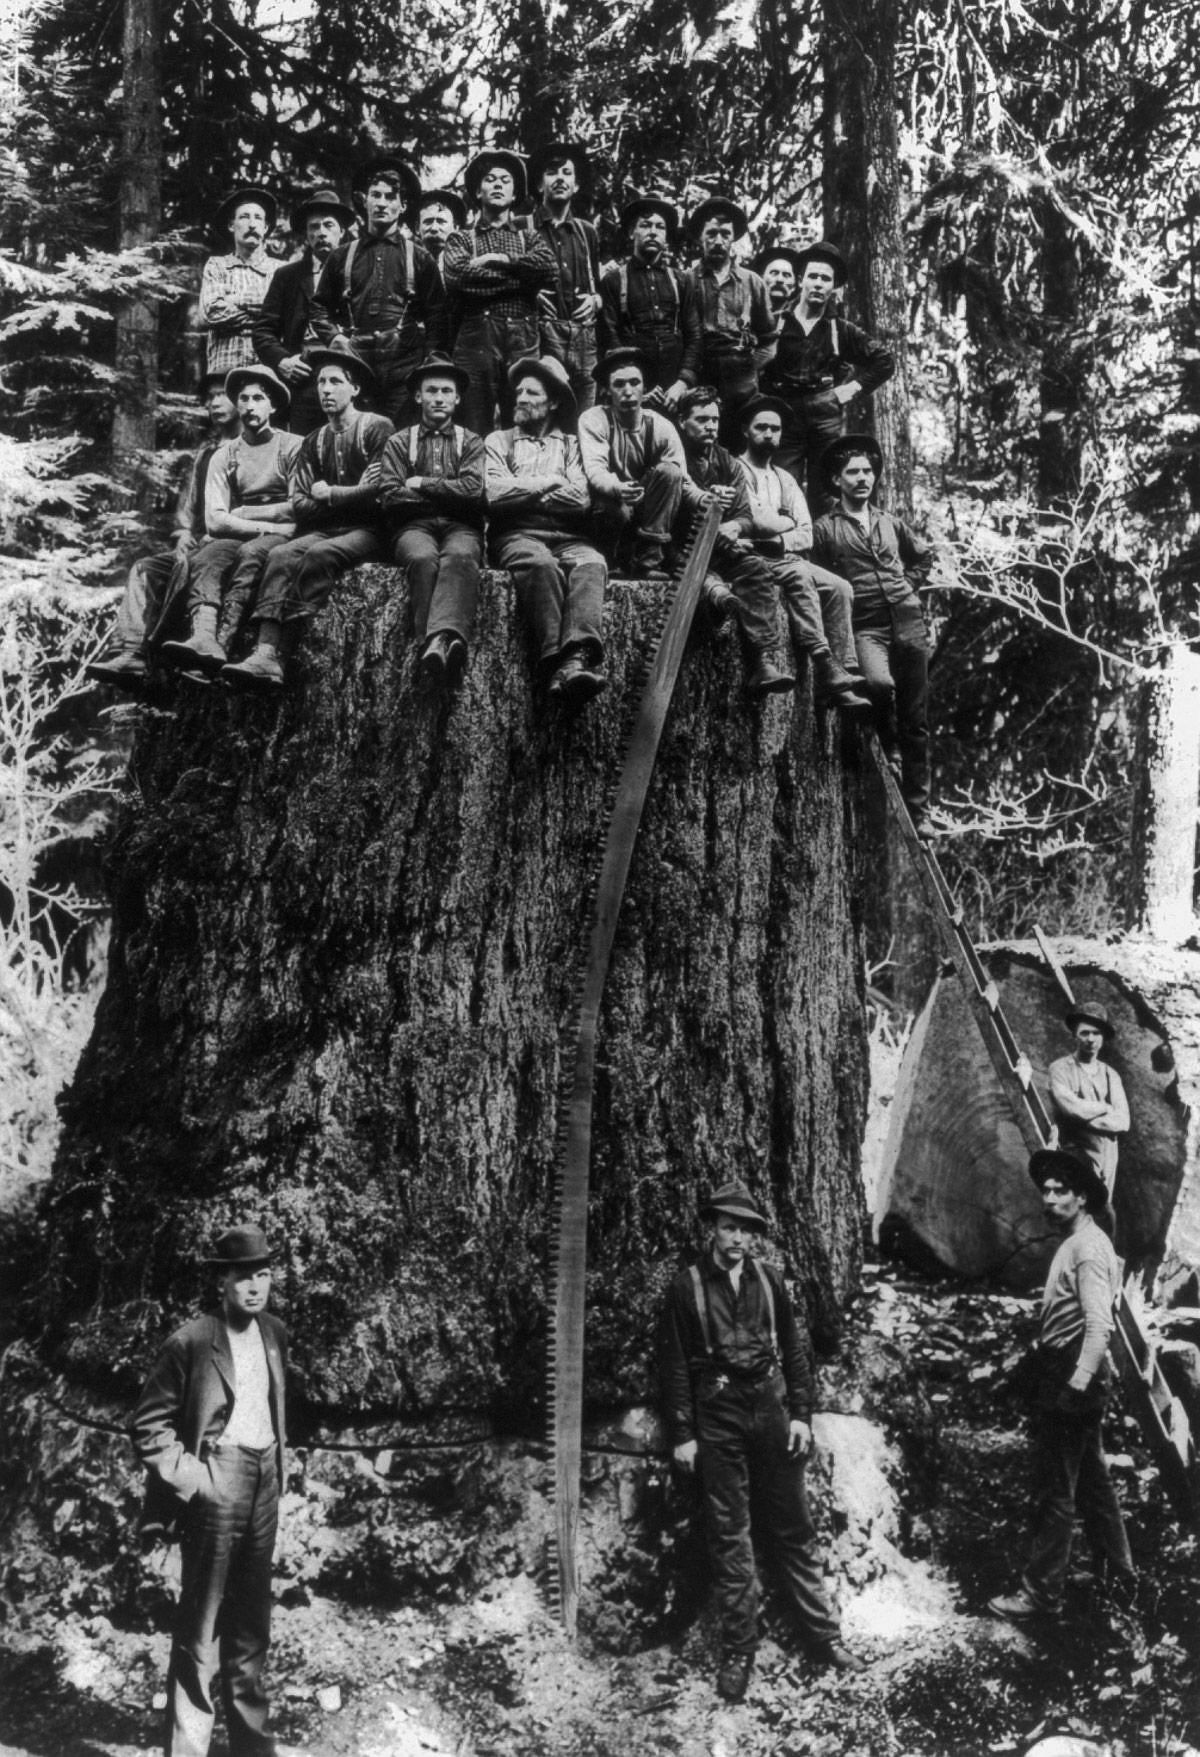 1904  Lumberjacks pose on the stump of a tree which was displayed at St. Louis World's Fair.  Image: Library of Congress